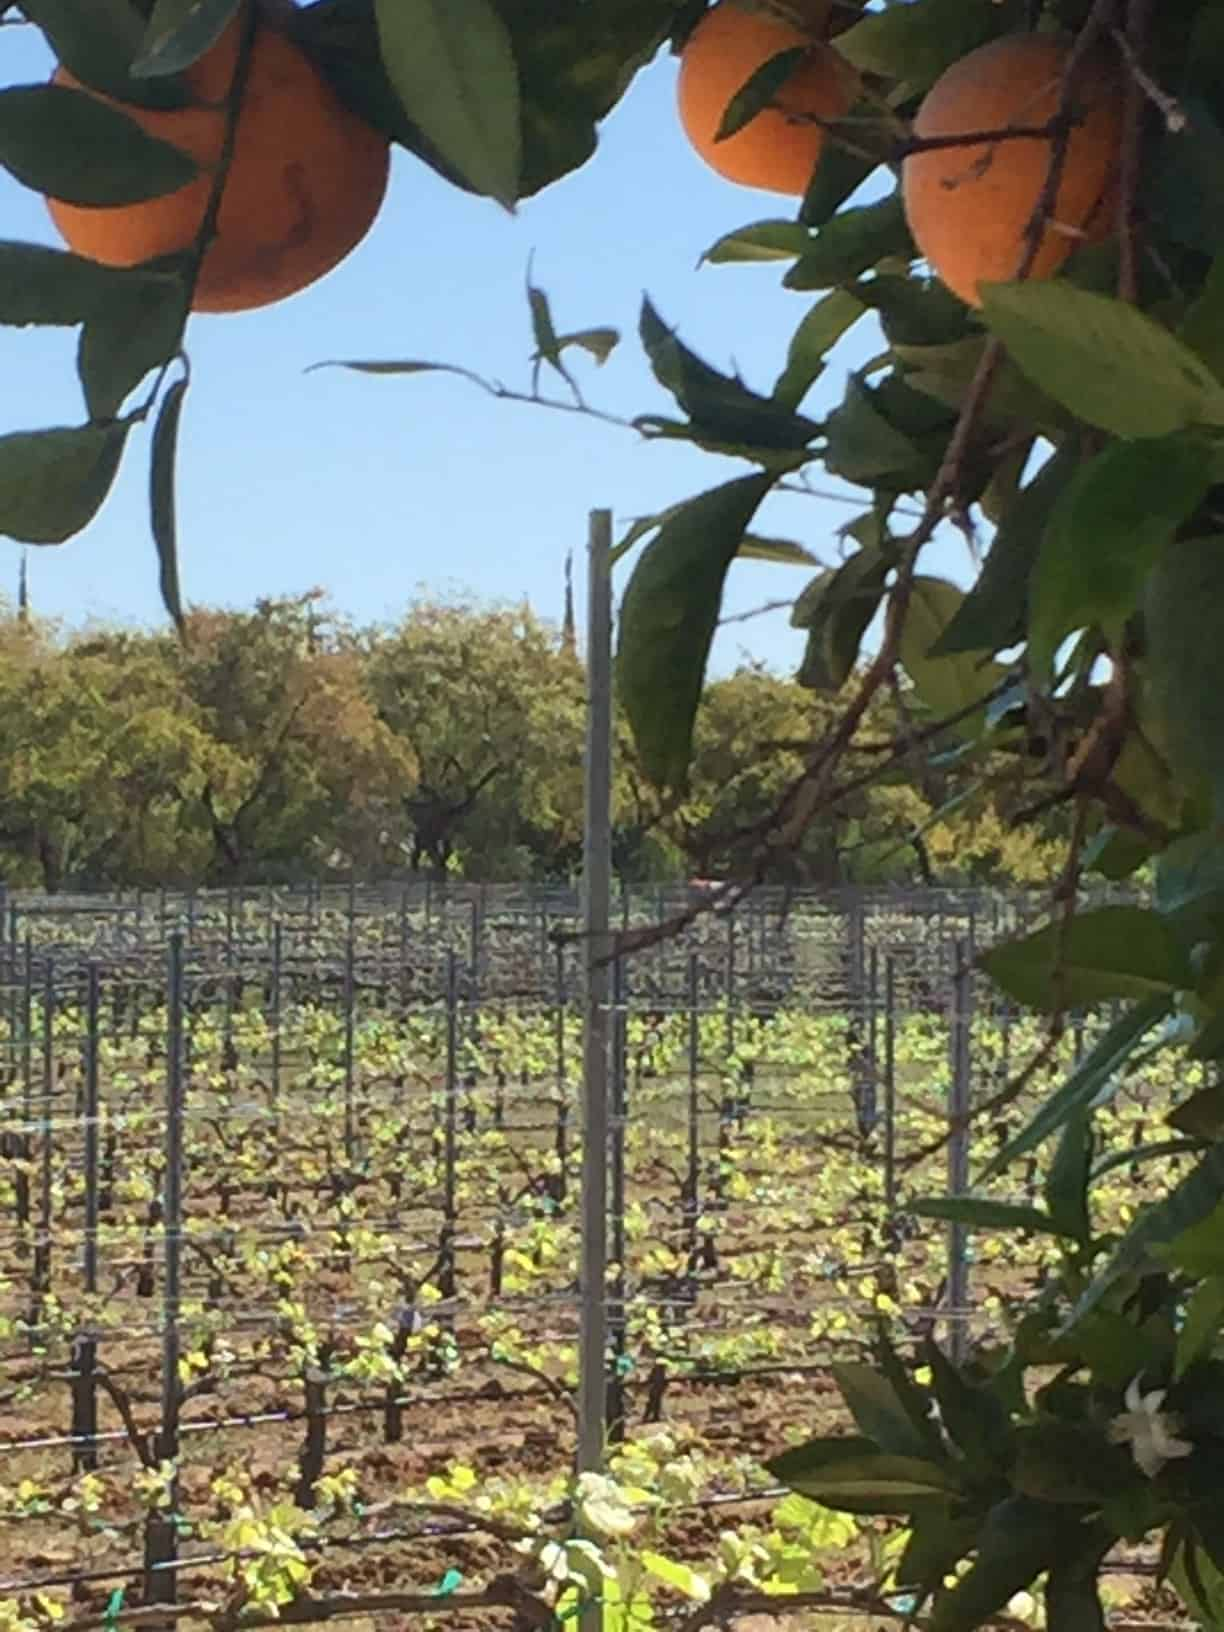 Temecula vines and oranges